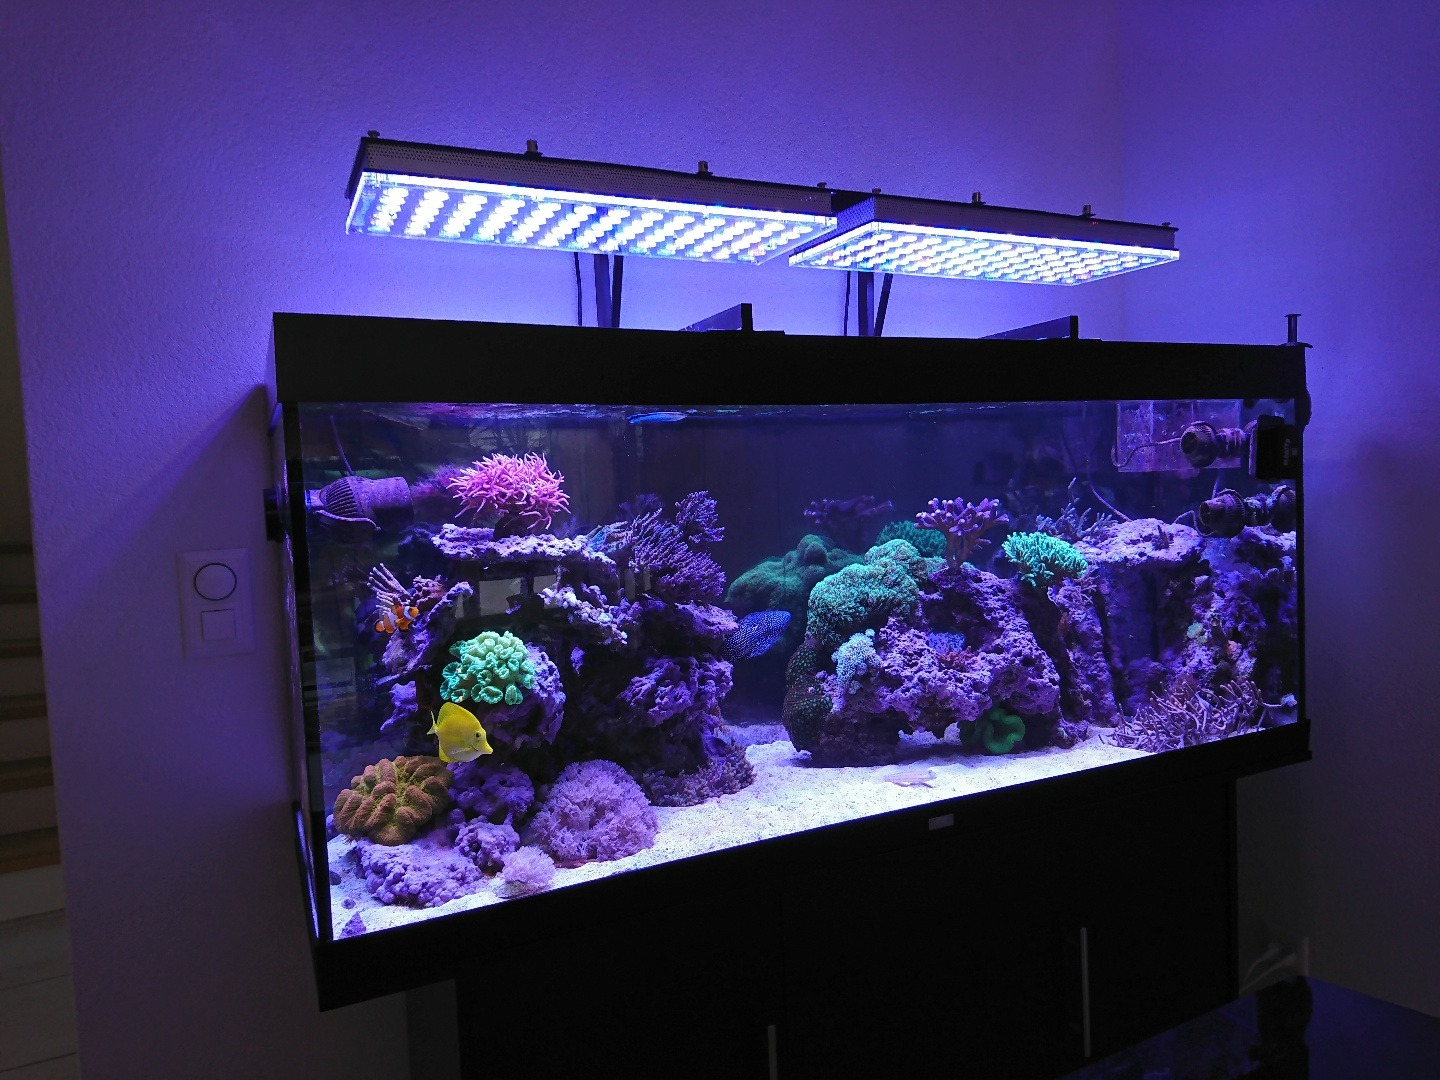 aquarium led licht orphek v3 reef montagearm teil ii aquarium led beleuchtung orphek. Black Bedroom Furniture Sets. Home Design Ideas